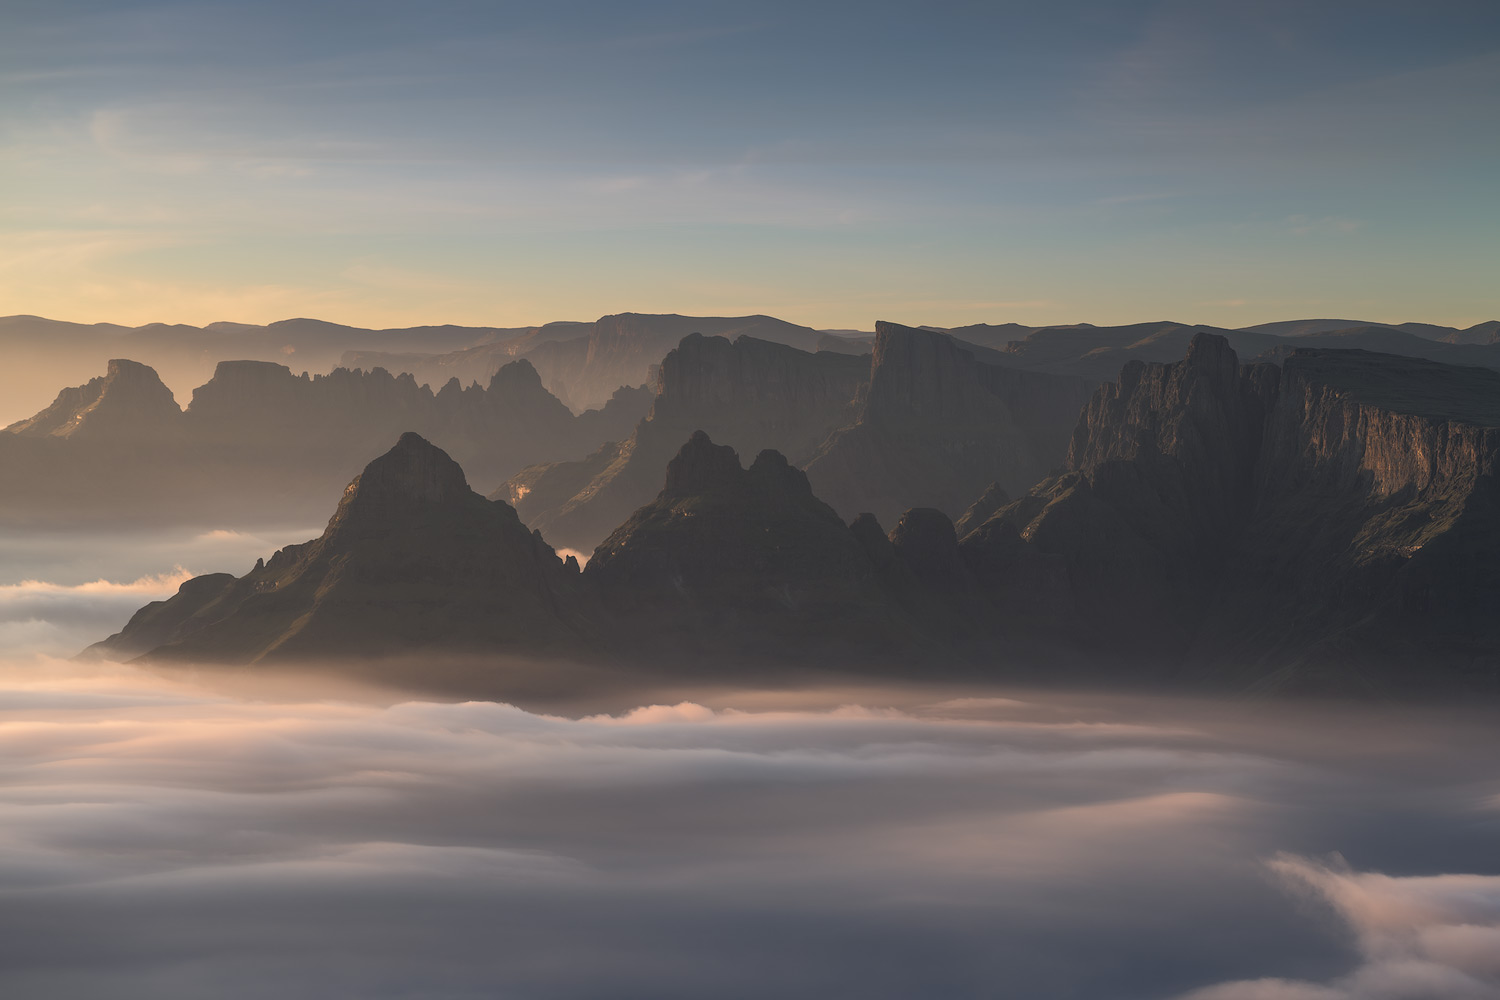 Nikon D850 / 70-200 f4 lens @ 145mm / ISO 64 - f/8 - 1/30 sec. The morning continued to produce amazing conditions and after the sun had risen, I captured this image as the first rays of light hit the inversion below.